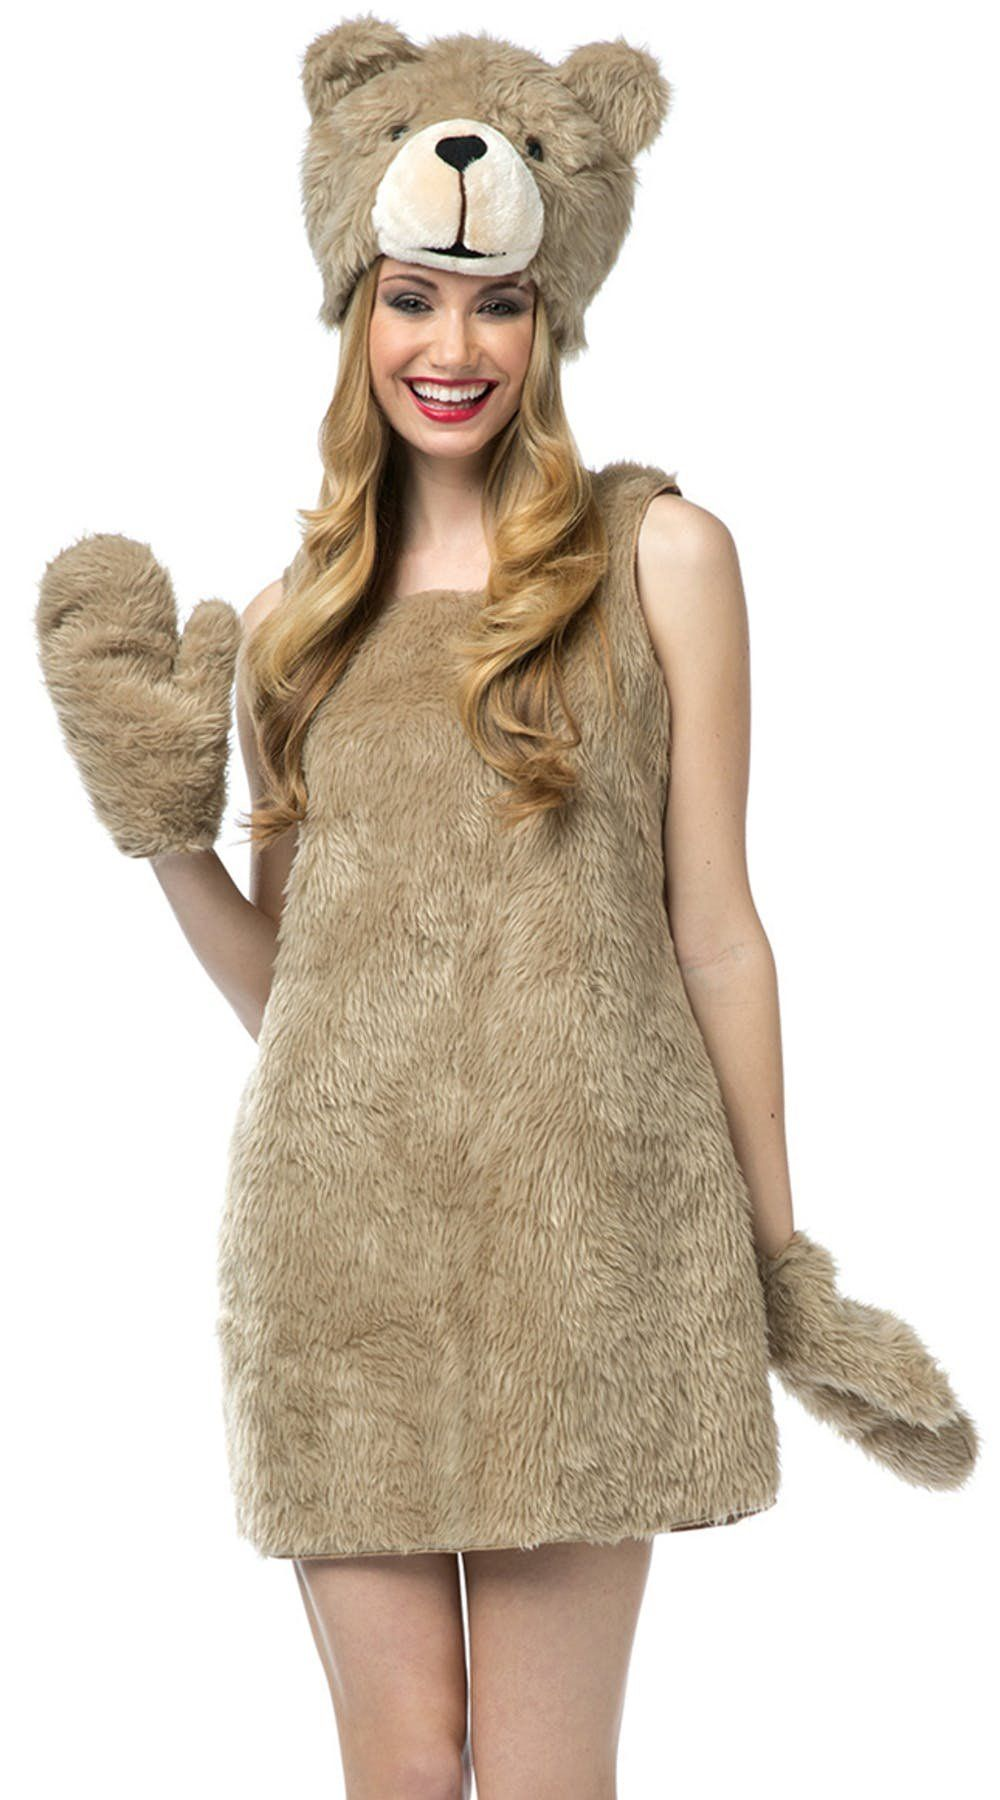 73d3d34fd Funny, sexy Halloween costumes, like this Teddy Bear costume ...